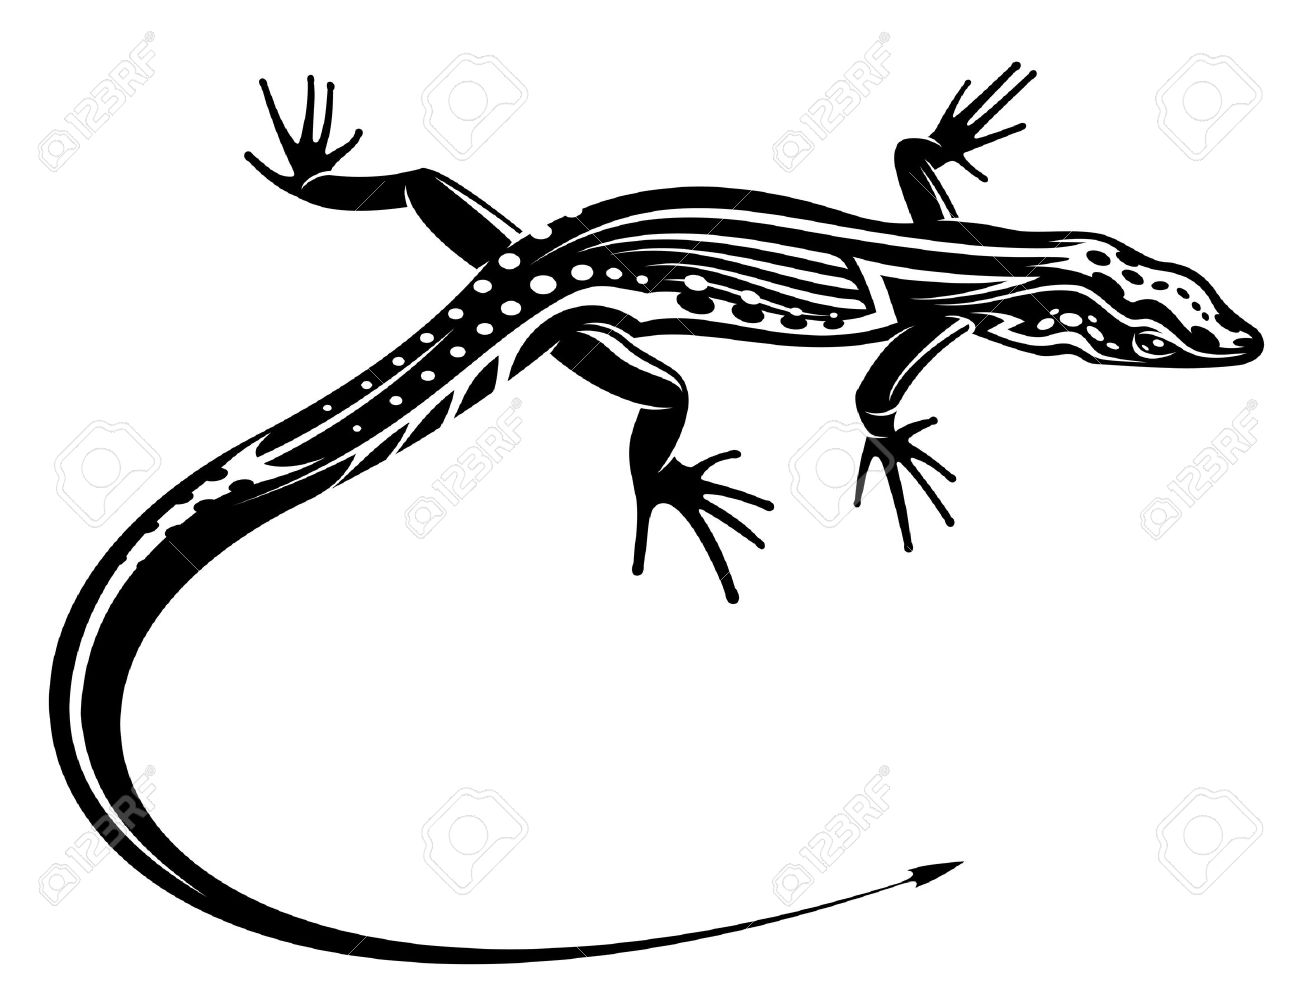 salamander stock photos royalty free salamander images and pictures